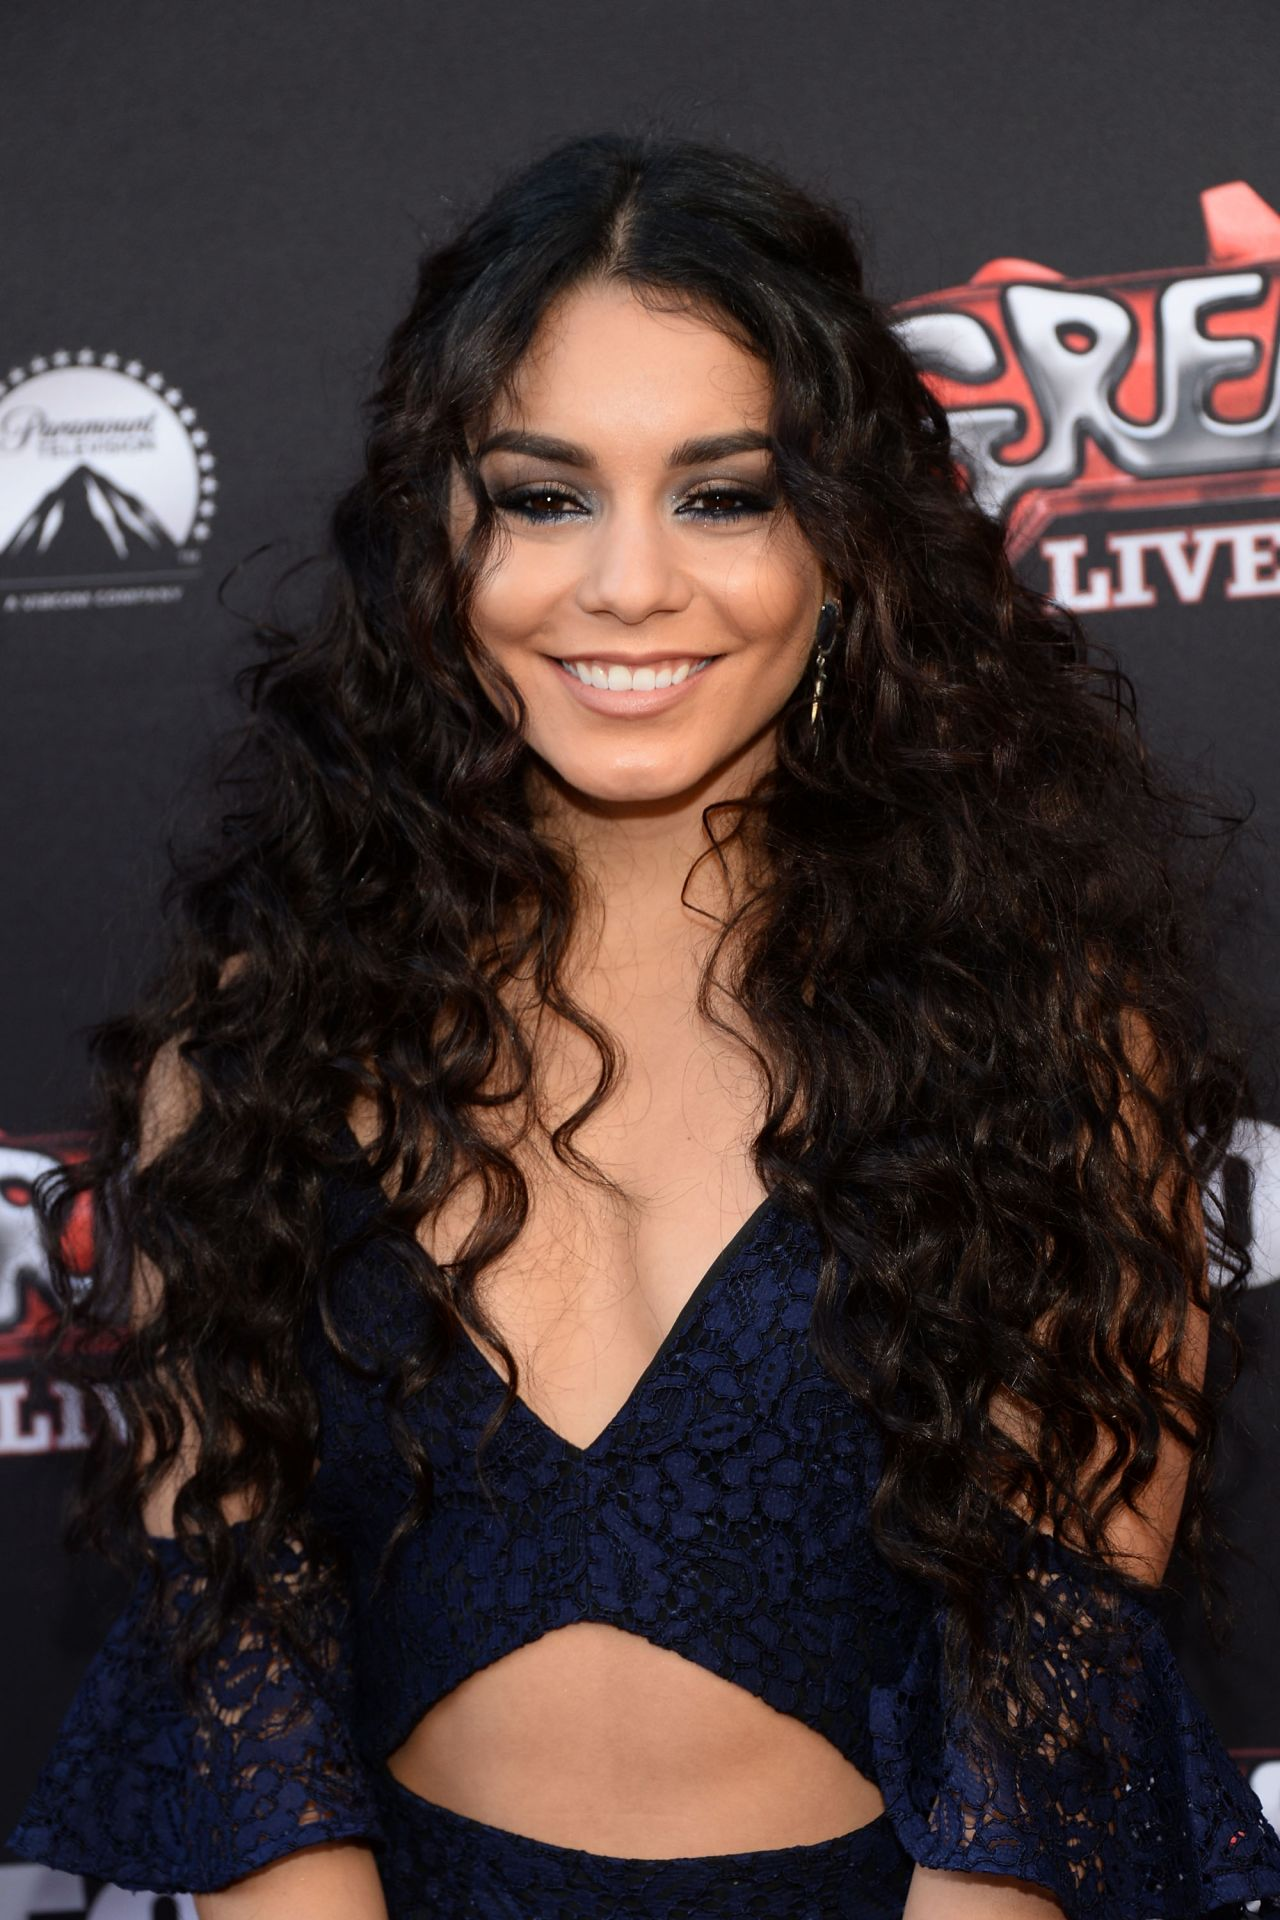 Vanessa Hudgens - GREASE: LIVE! For Your Consideration ... Vanessa Hudgens